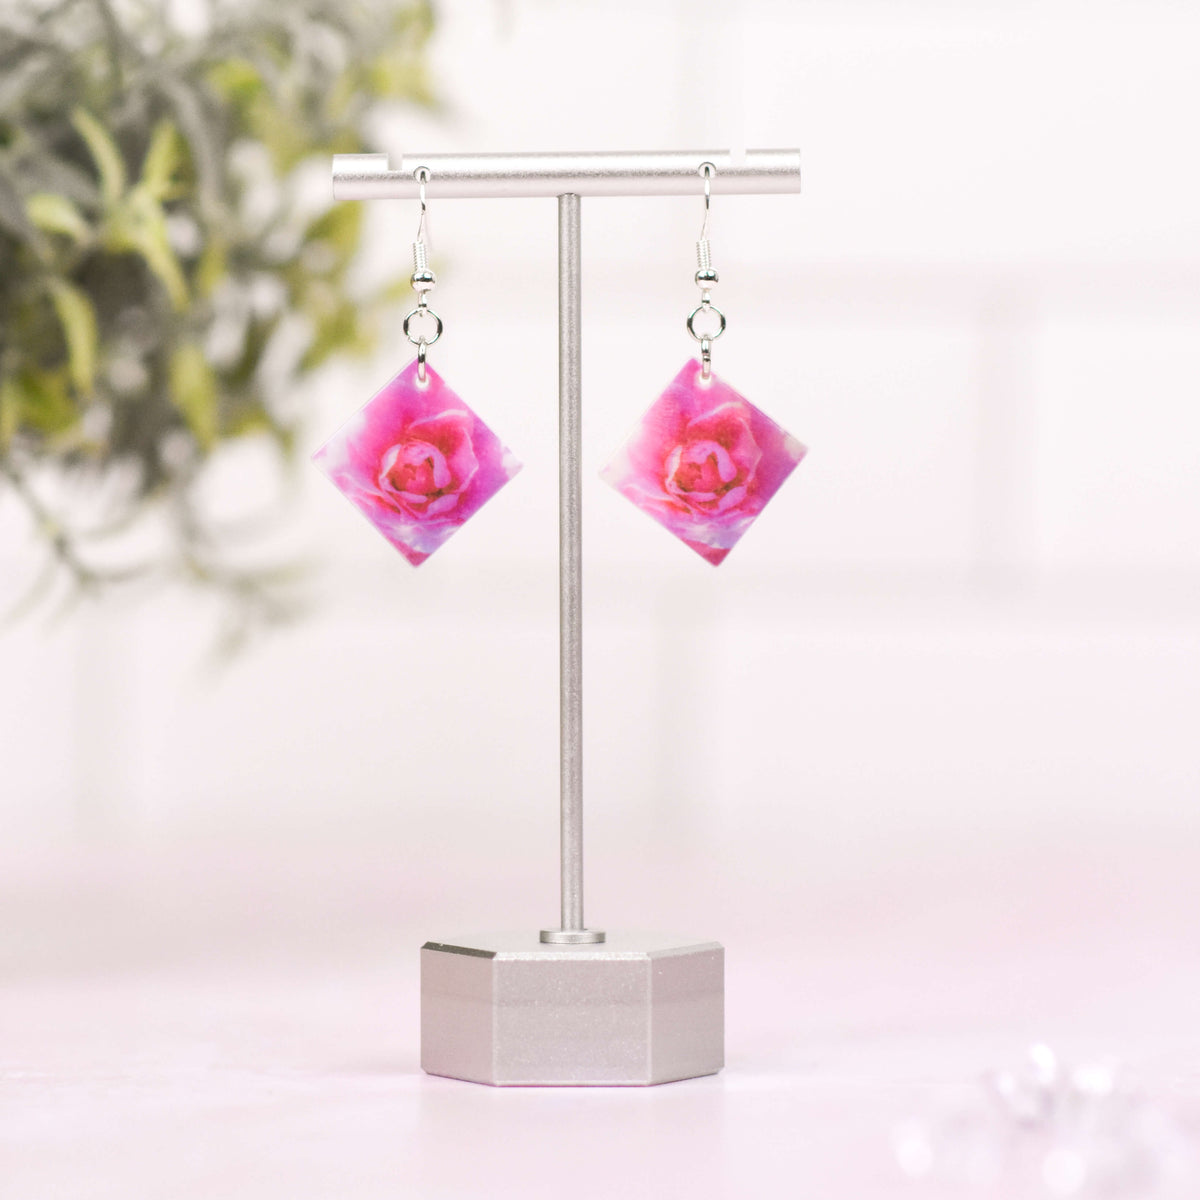 Bright Pink Rose Mother of Pearl Earrings on Pink Marble and Subway Tile Background - Wear the Wonder